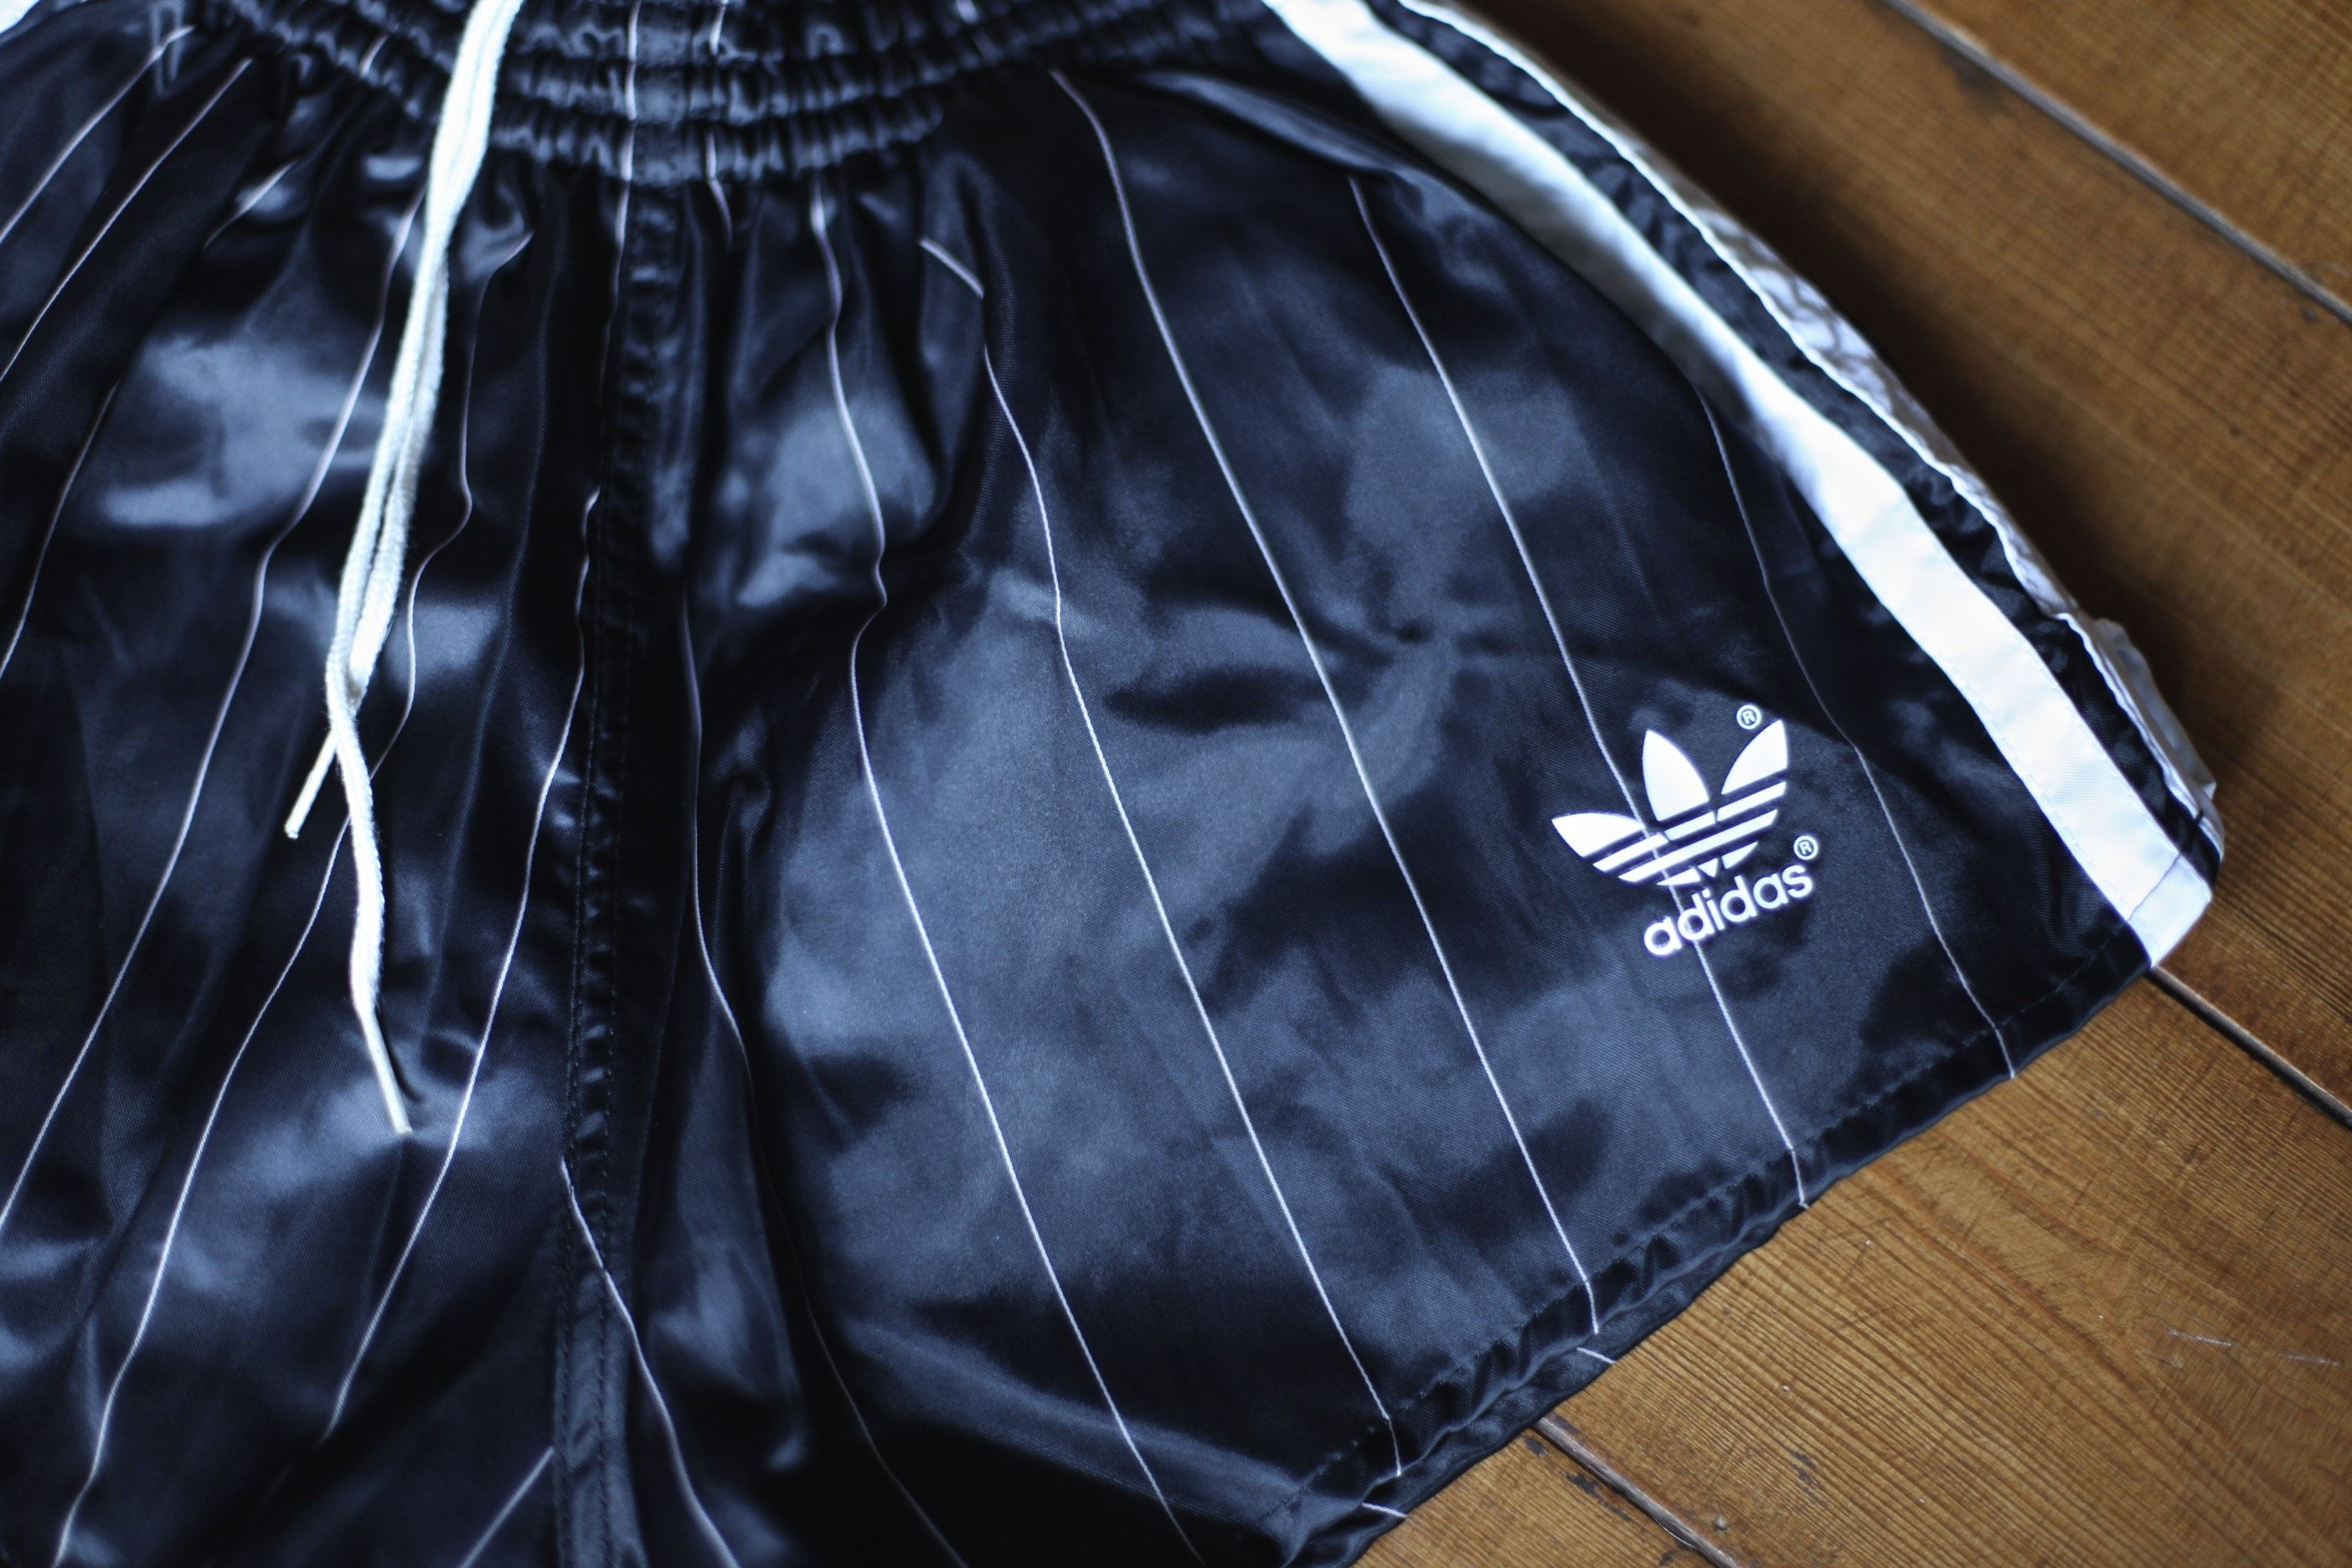 d13b67227 Very Rare Black / White / Pink NEW but Vintage Adidas Beckenbauer Shorts.  D4 (S) German Made, £145.00